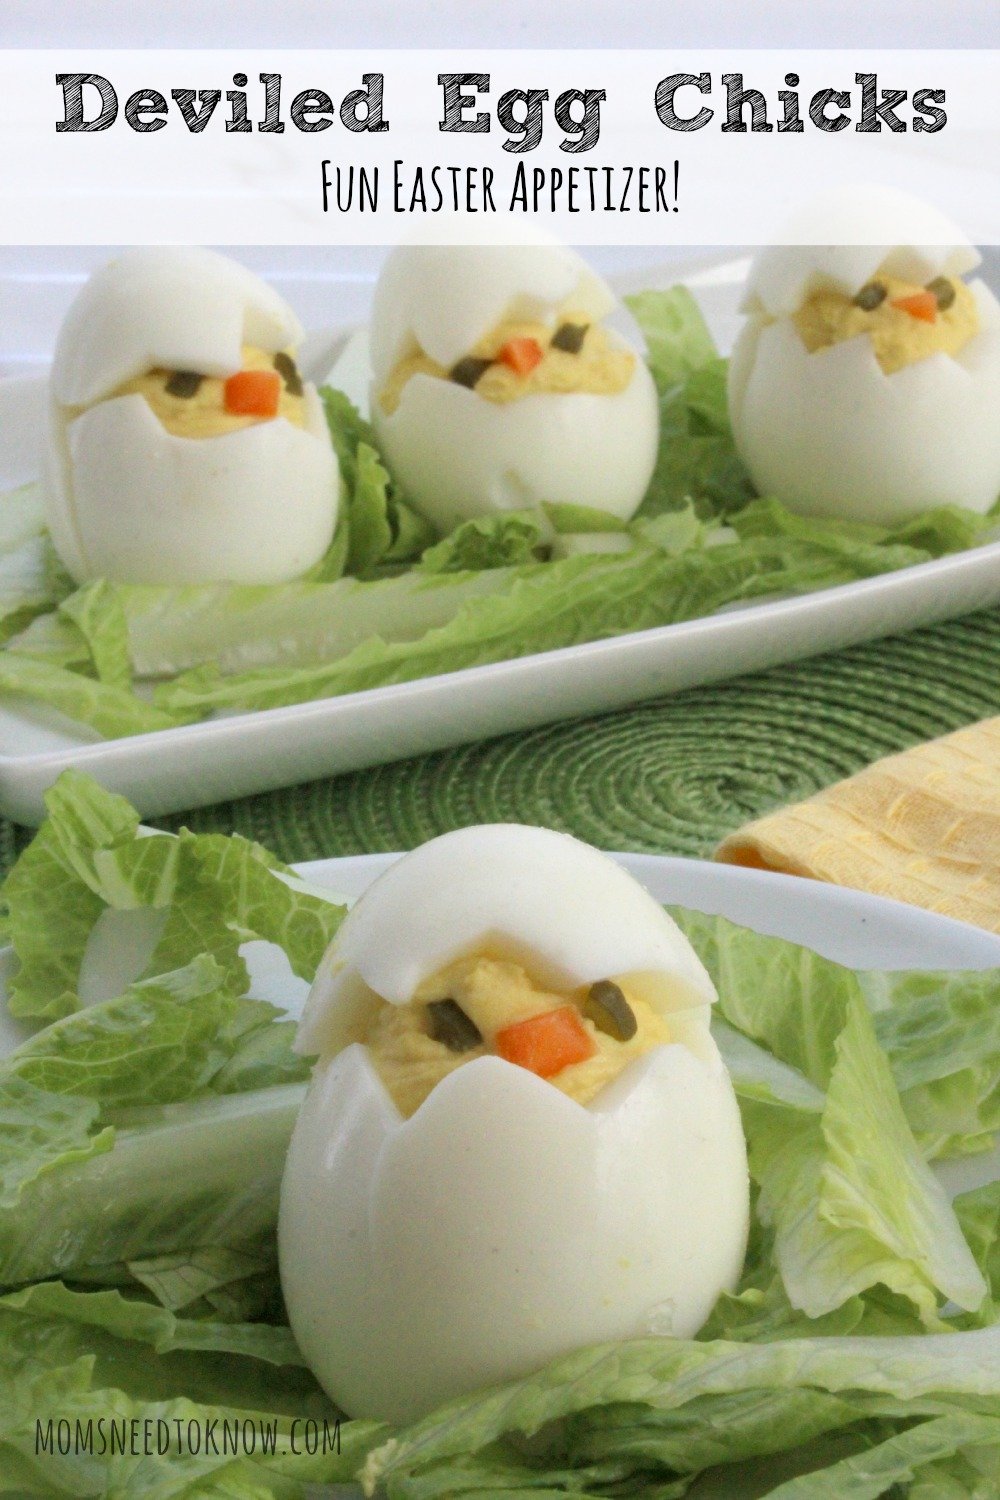 Deviled eggs are always on our Easter table (and any holiday dinner that our family ever has) and these deviled egg chicks will look so cute on your table!